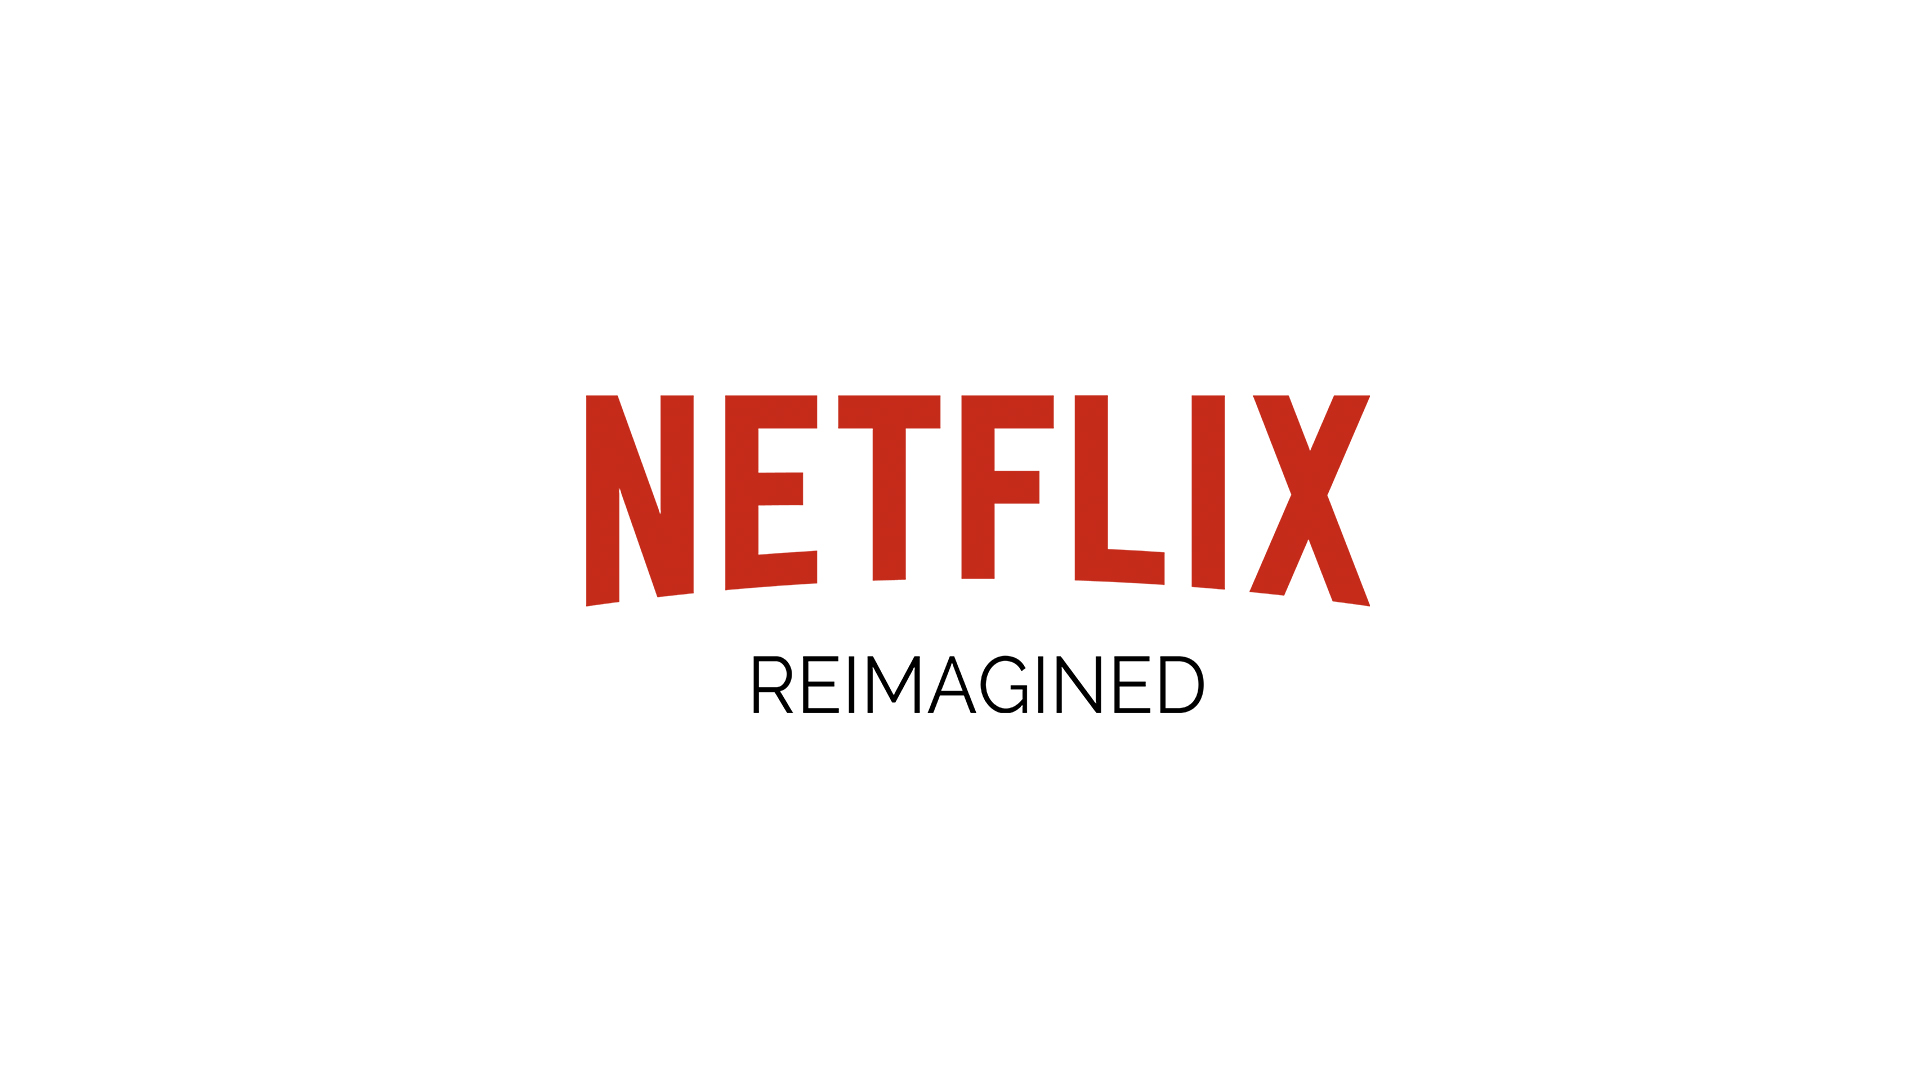 Netflix Reimagined